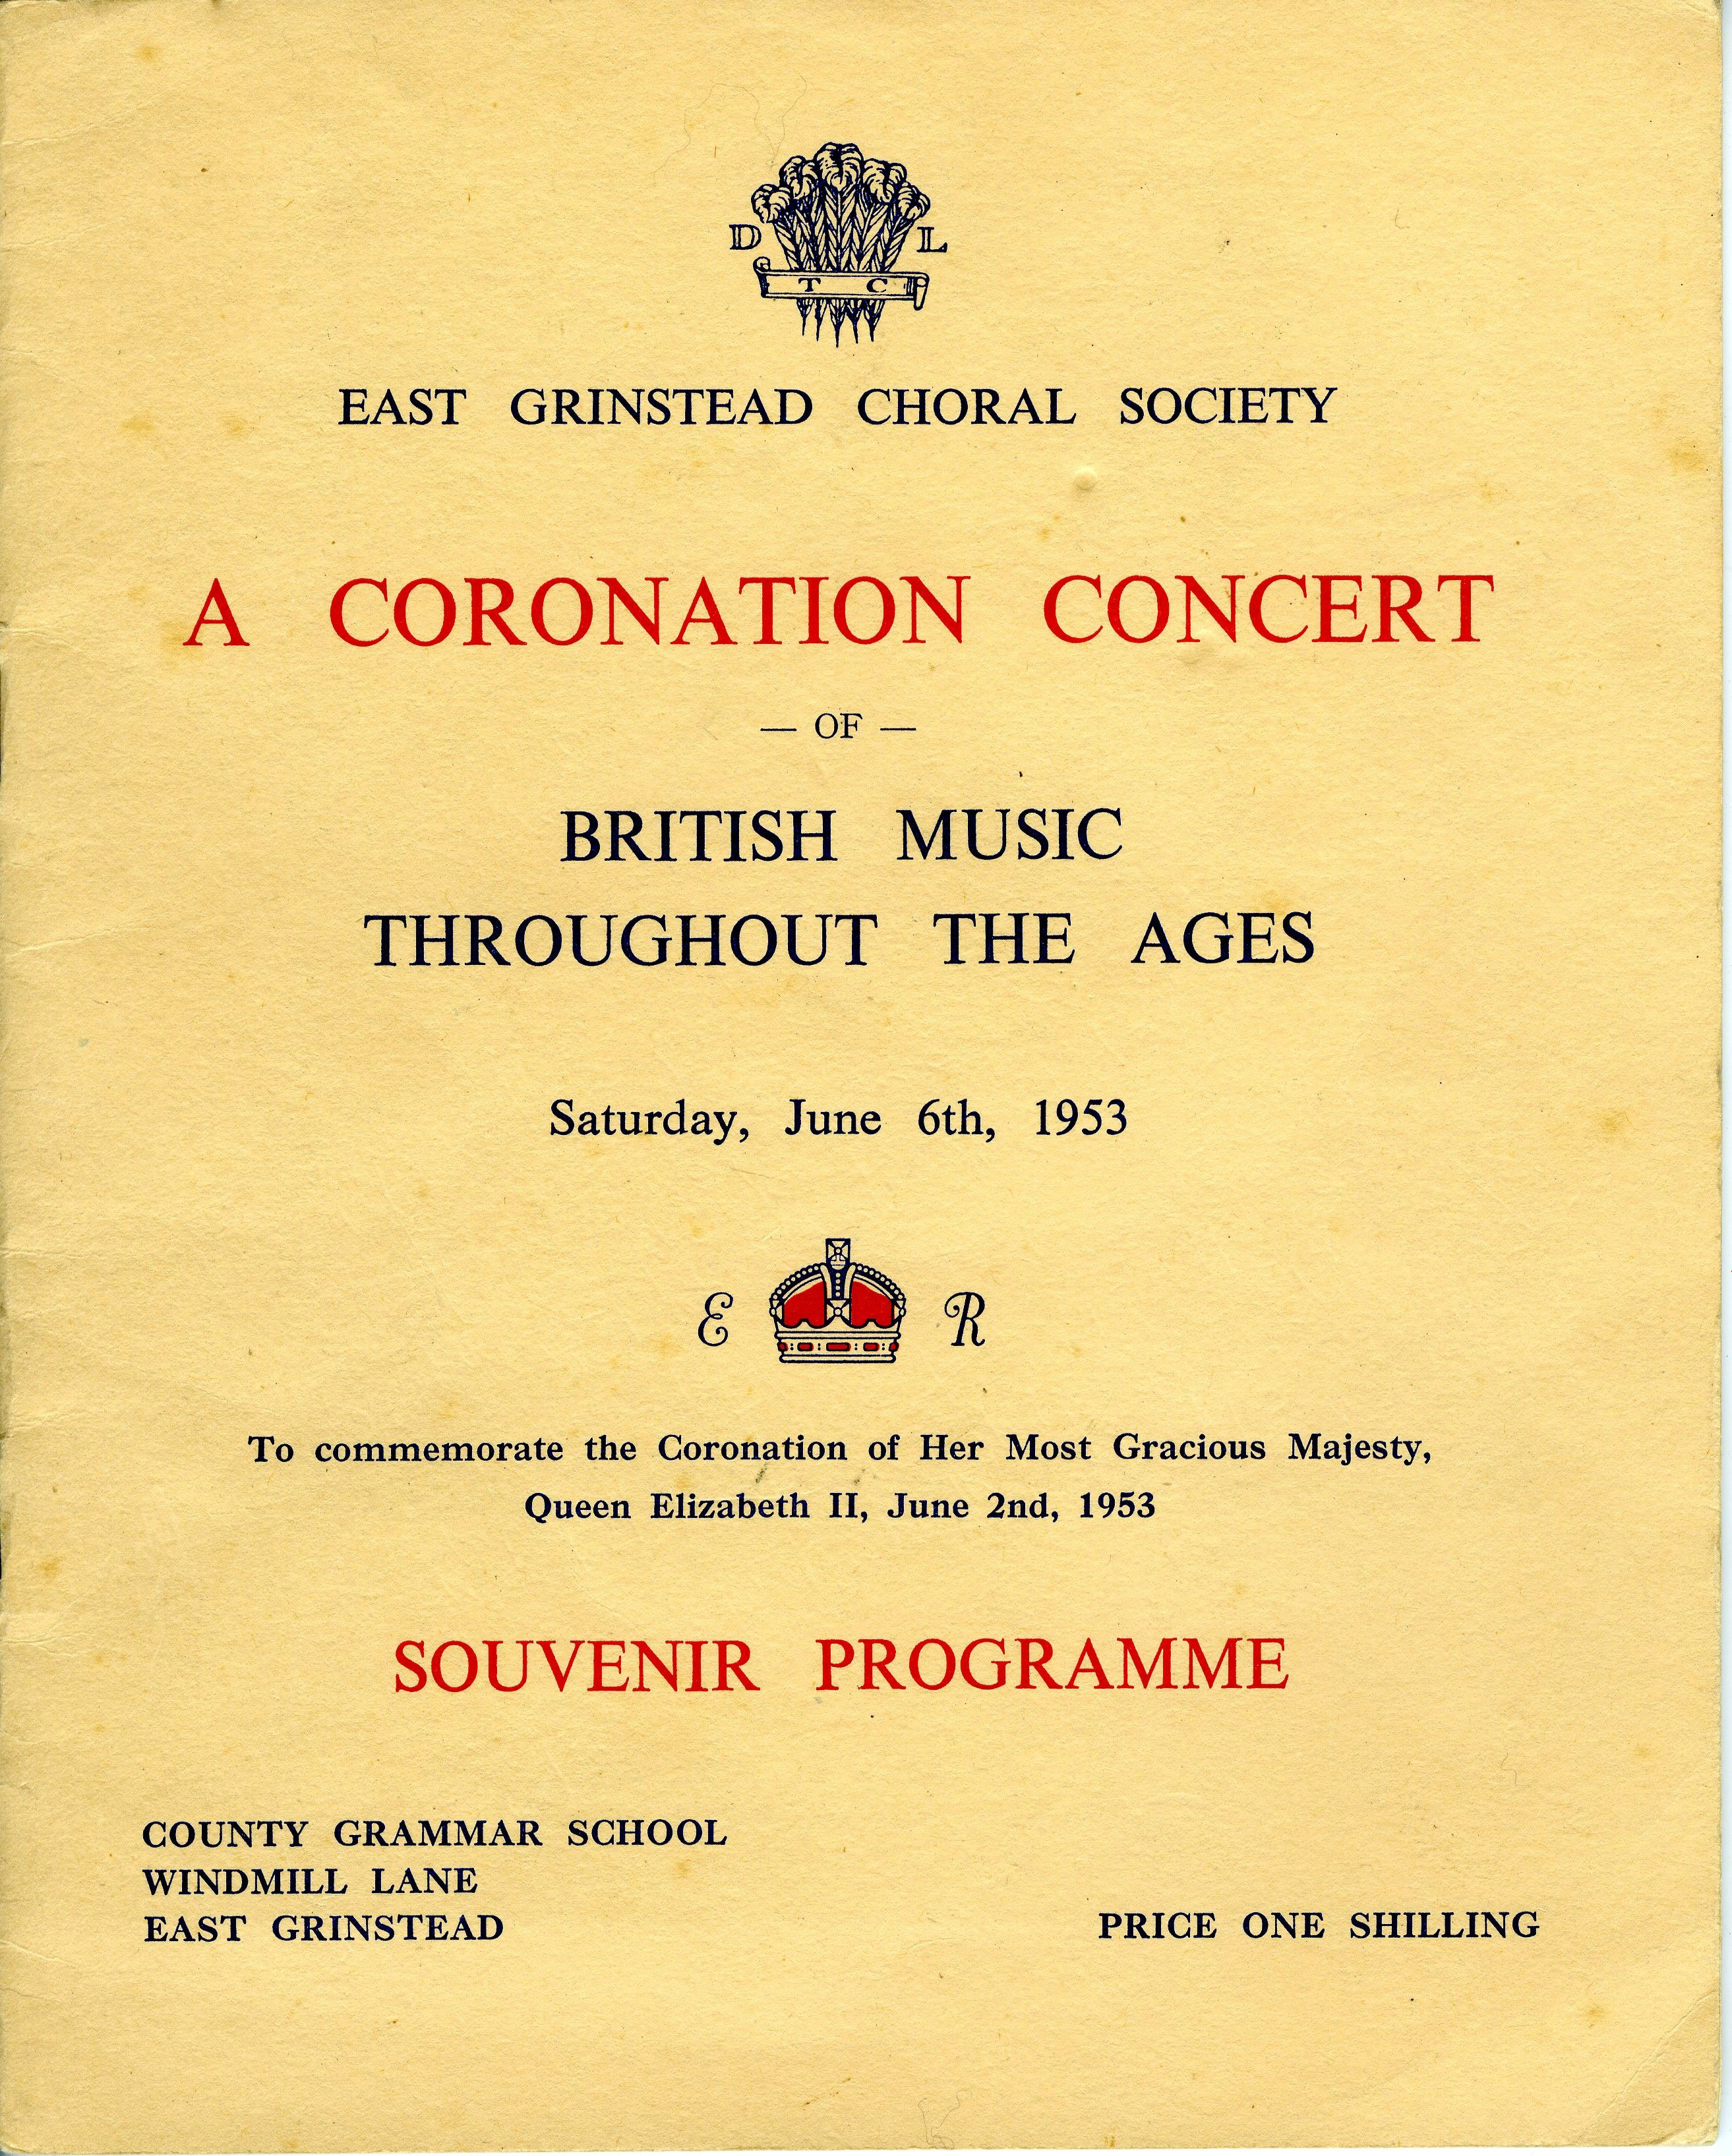 East Grinstead Museum – East Grinstead Choral Society Programme for the Coronation, 1953